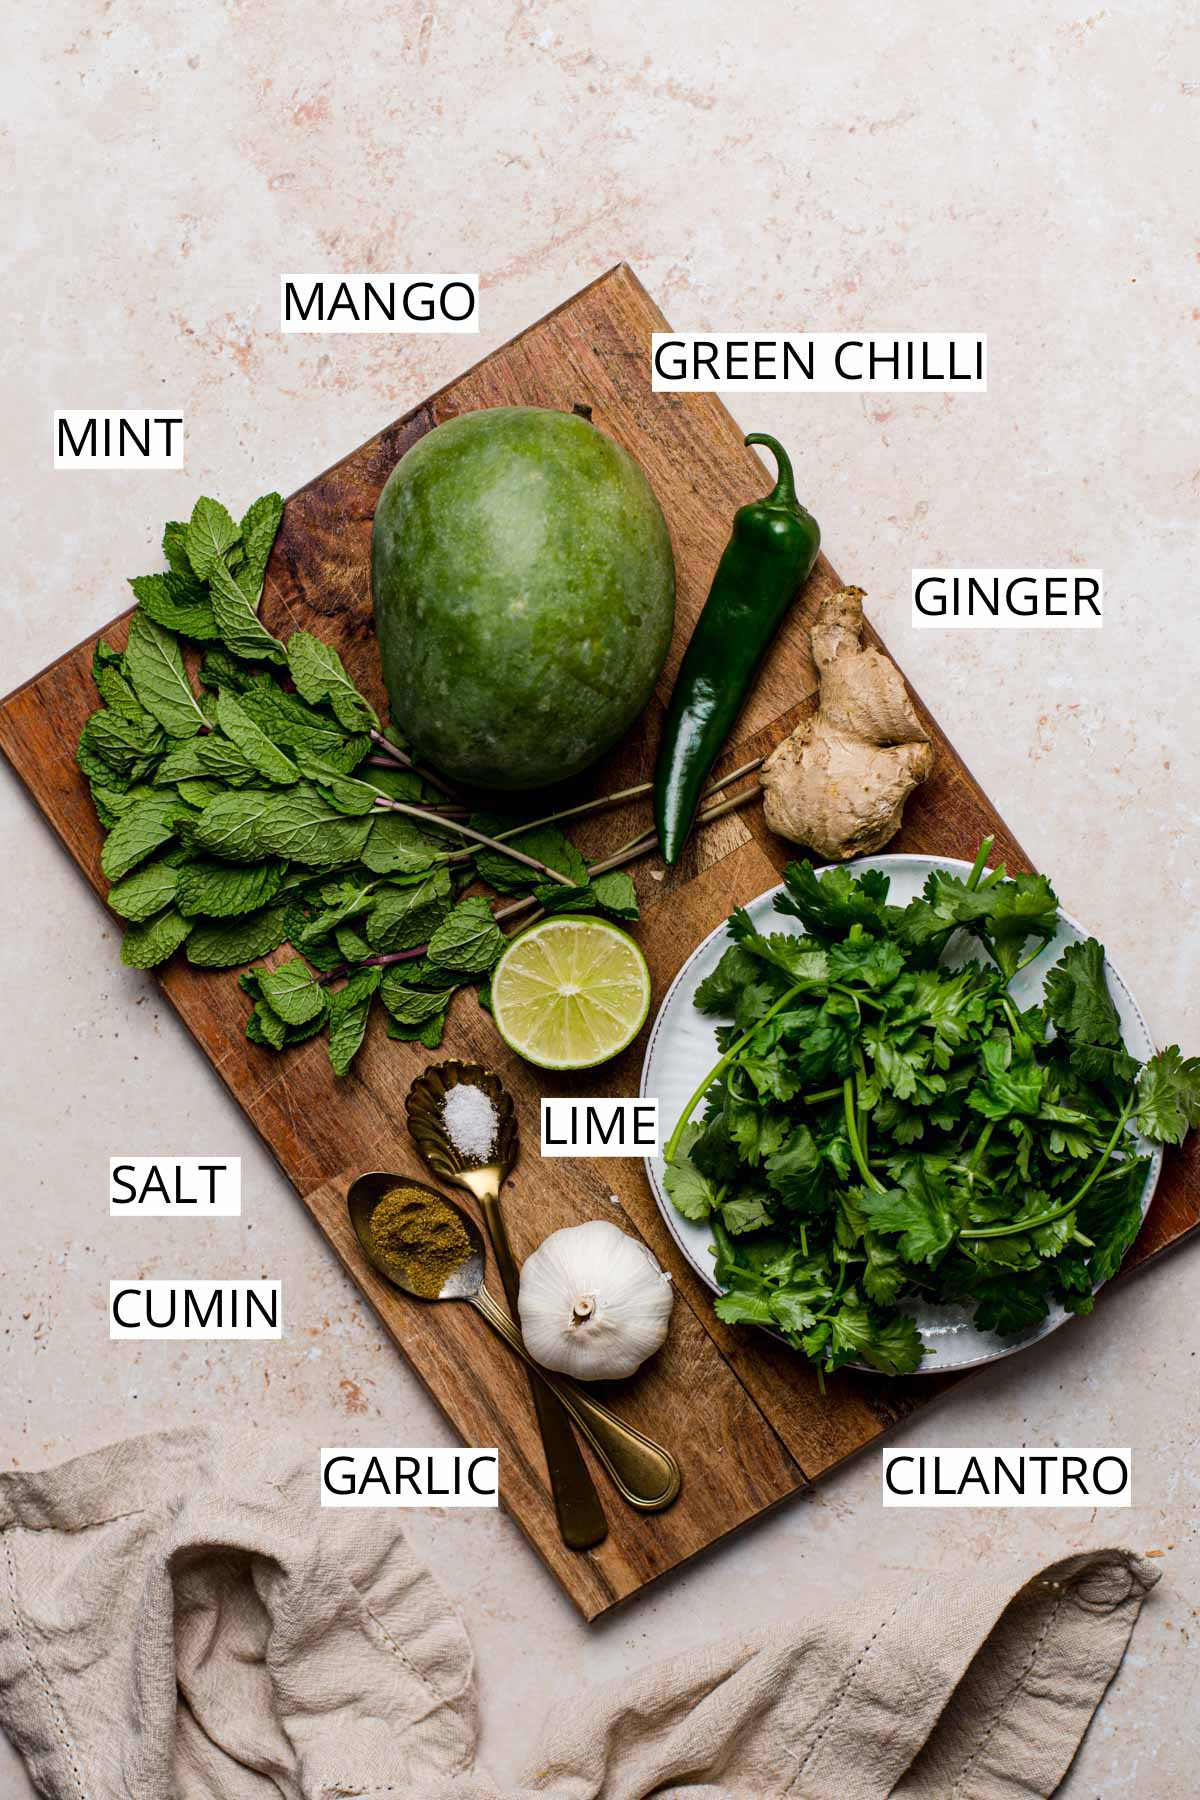 Various ingredients needed to make green mango chutney on a wooden board.